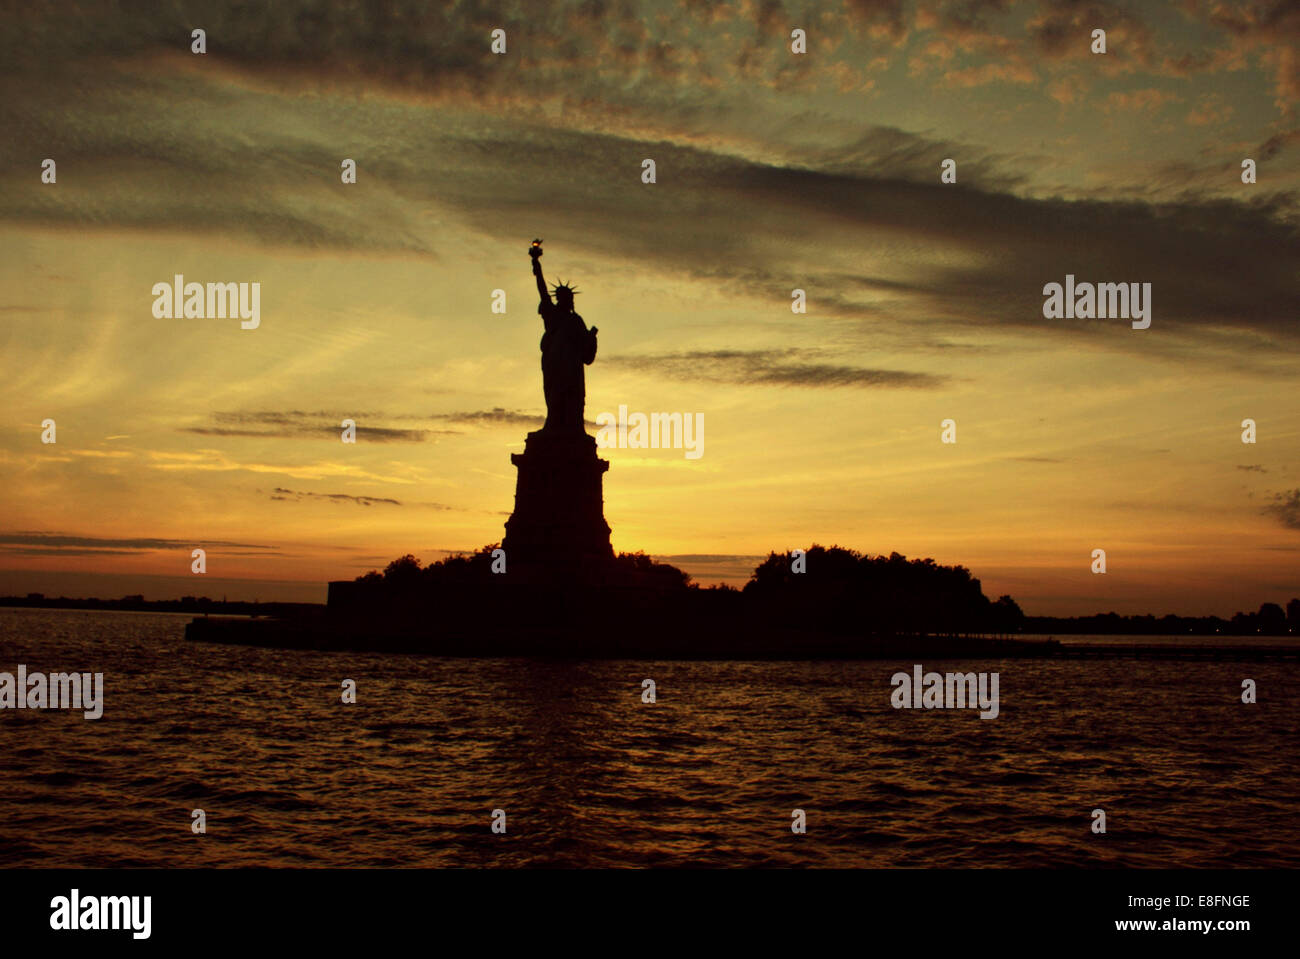 USA, New York State, New York City, Statue of Liberty at sunset Stock Photo